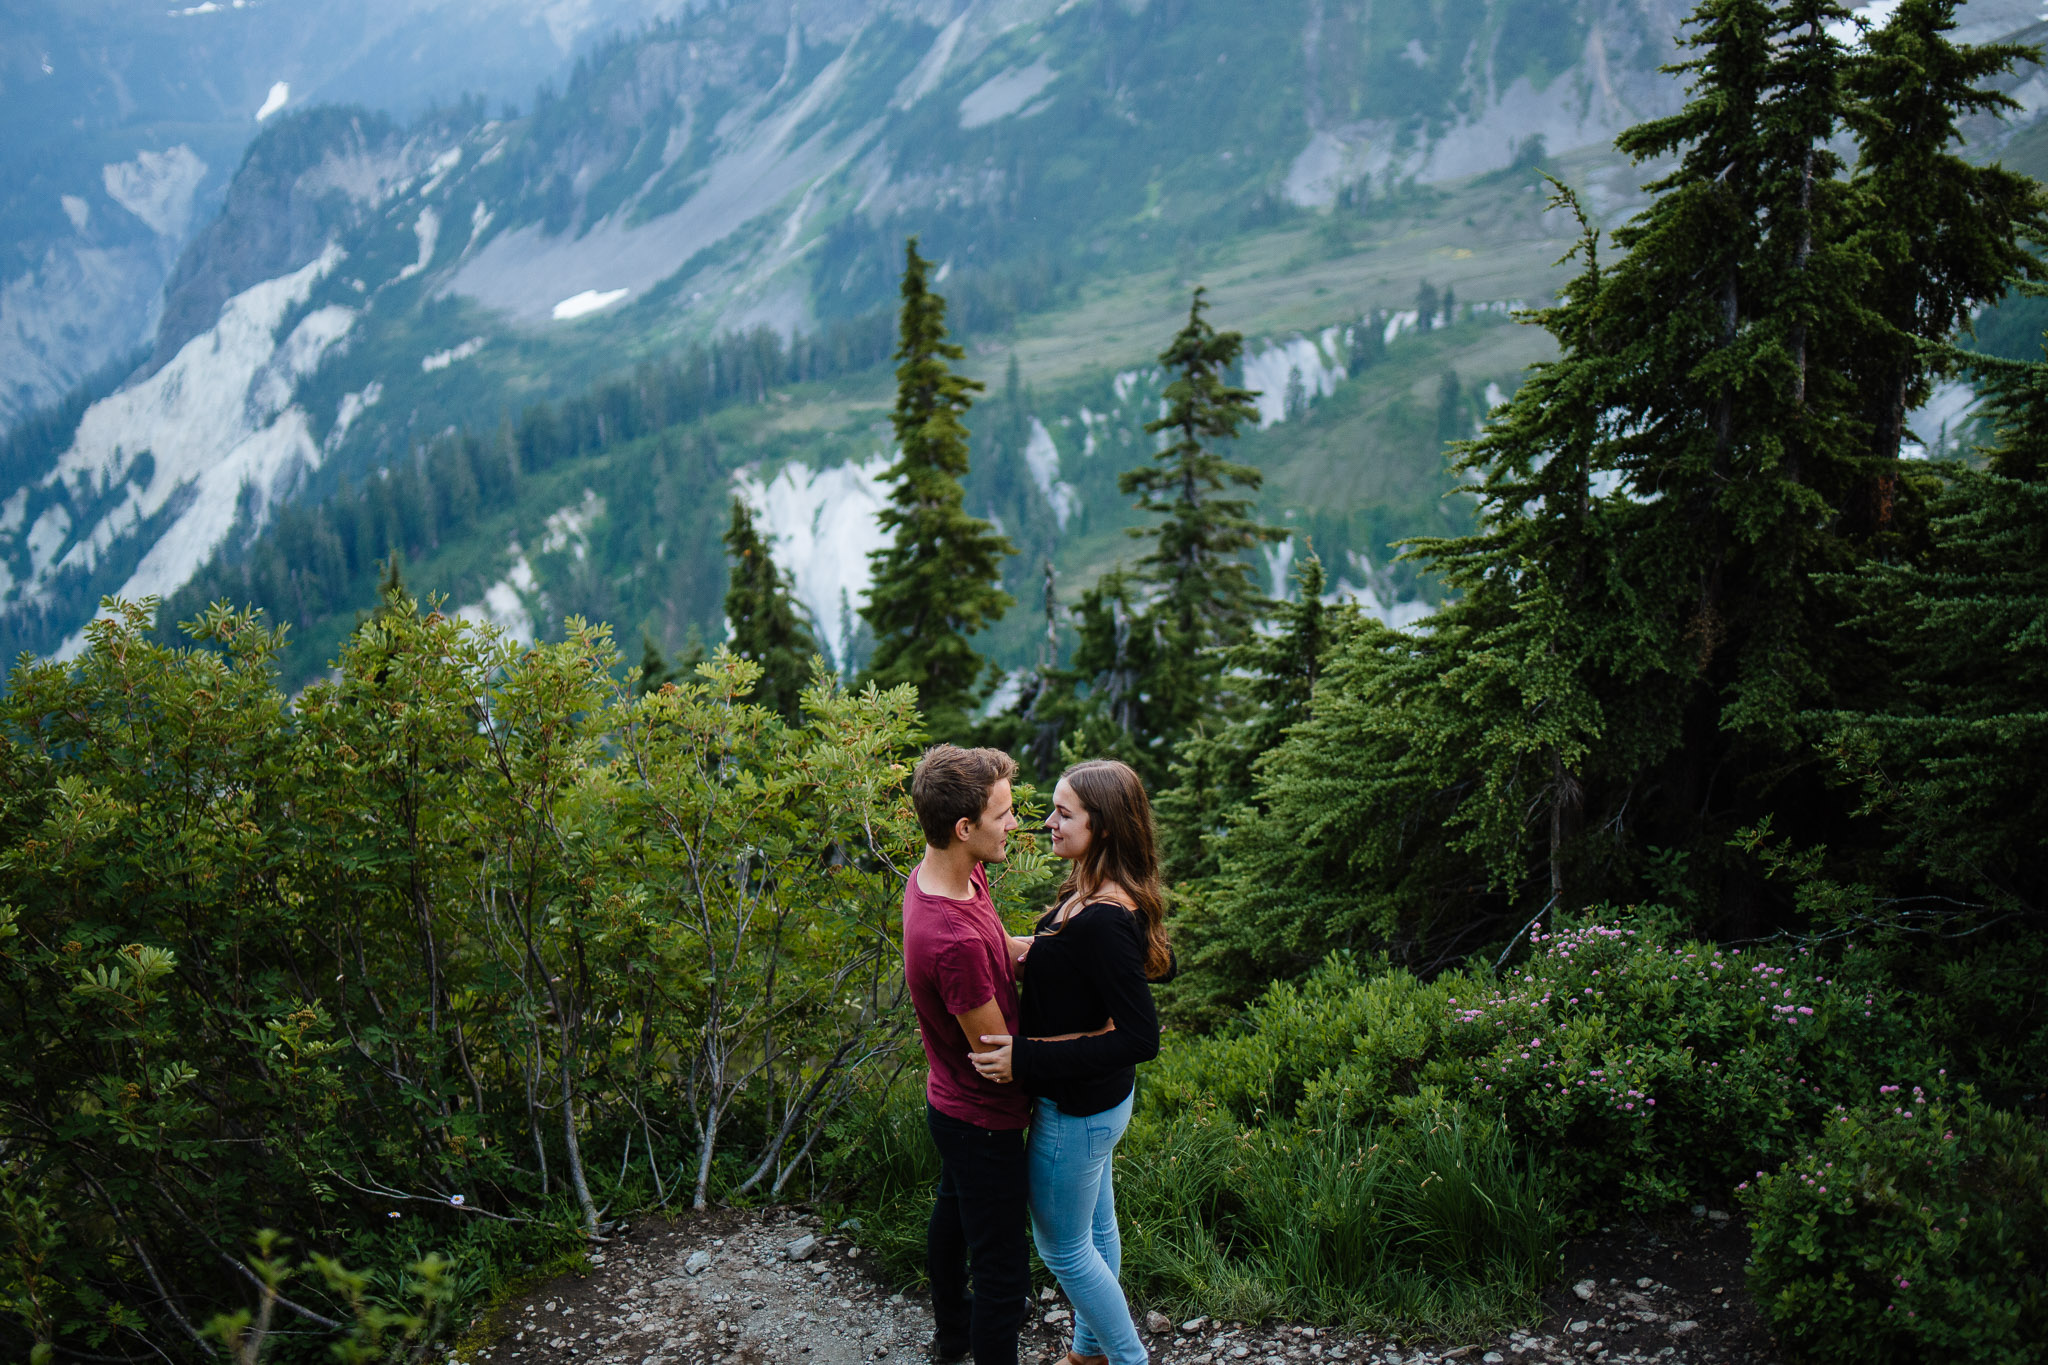 Artist Point Mount Baker Scenery Engagement Photography Inspo Couple Romantic Young Black Jean Sunset-237.jpg